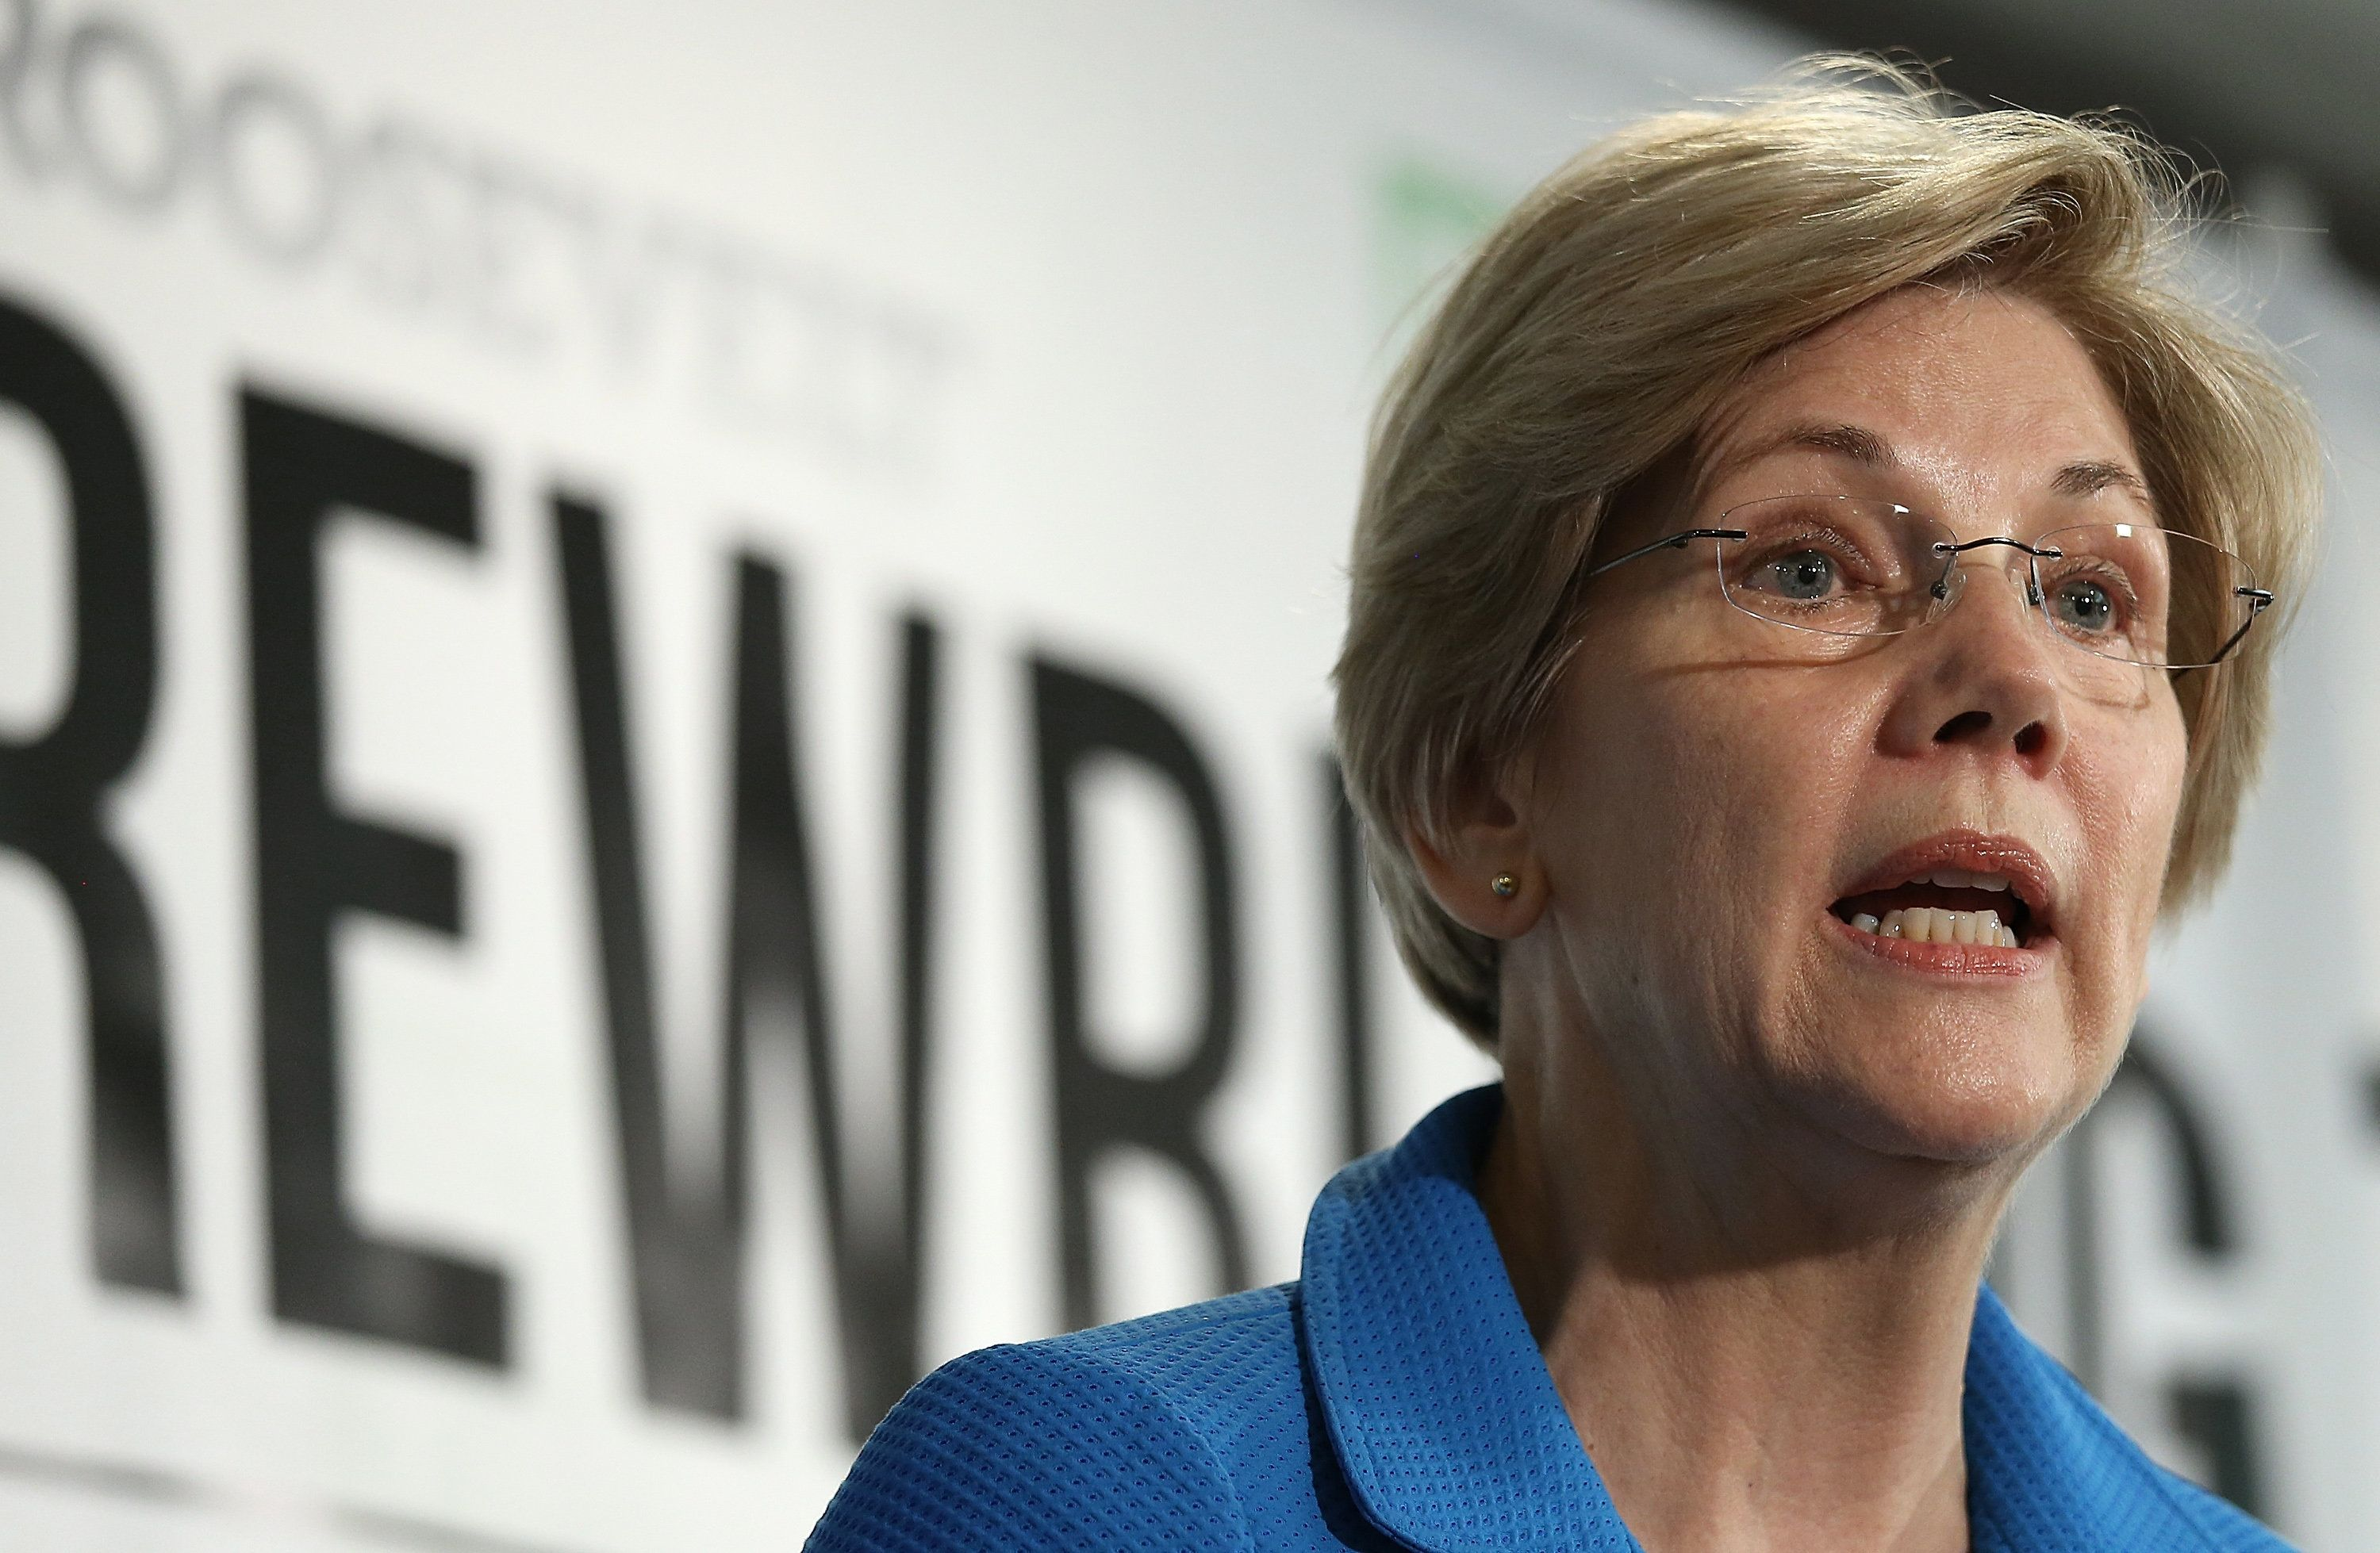 WASHINGTON, DC - MAY 12:  Sen. Elizabeth Warren (D-MA) speaks about the release of a new report authored by Nobel-prize winning economist Joseph Stiglitz published by the Roosevelt Institute May 12, 2015 in Washington, DC. The report, titled 'New Economic Agenda for Growth and Shared Prosperity', discusses the current distribution of wealth in the U.S. and offers proposals for modifying that distribution.  (Photo by Win McNamee/Getty Images)